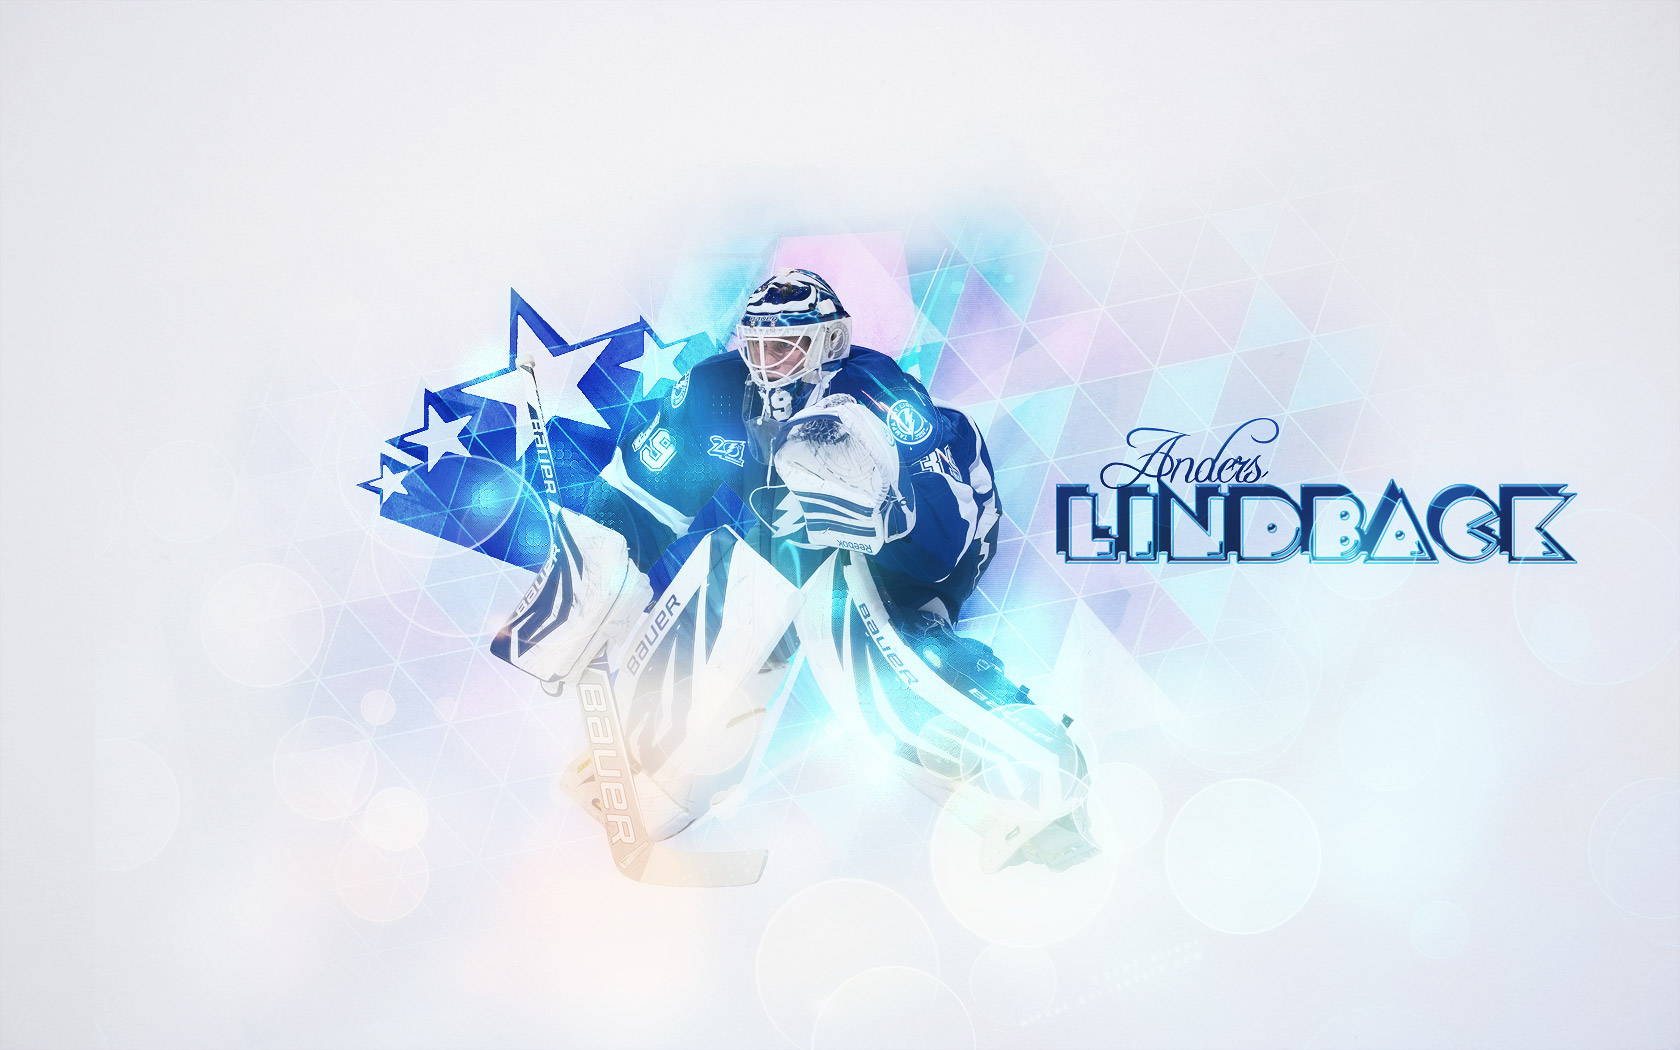 NHL Wallpapers   Anders Lindback Tampa Bay Lightning 2014 wallpaper 1680x1050